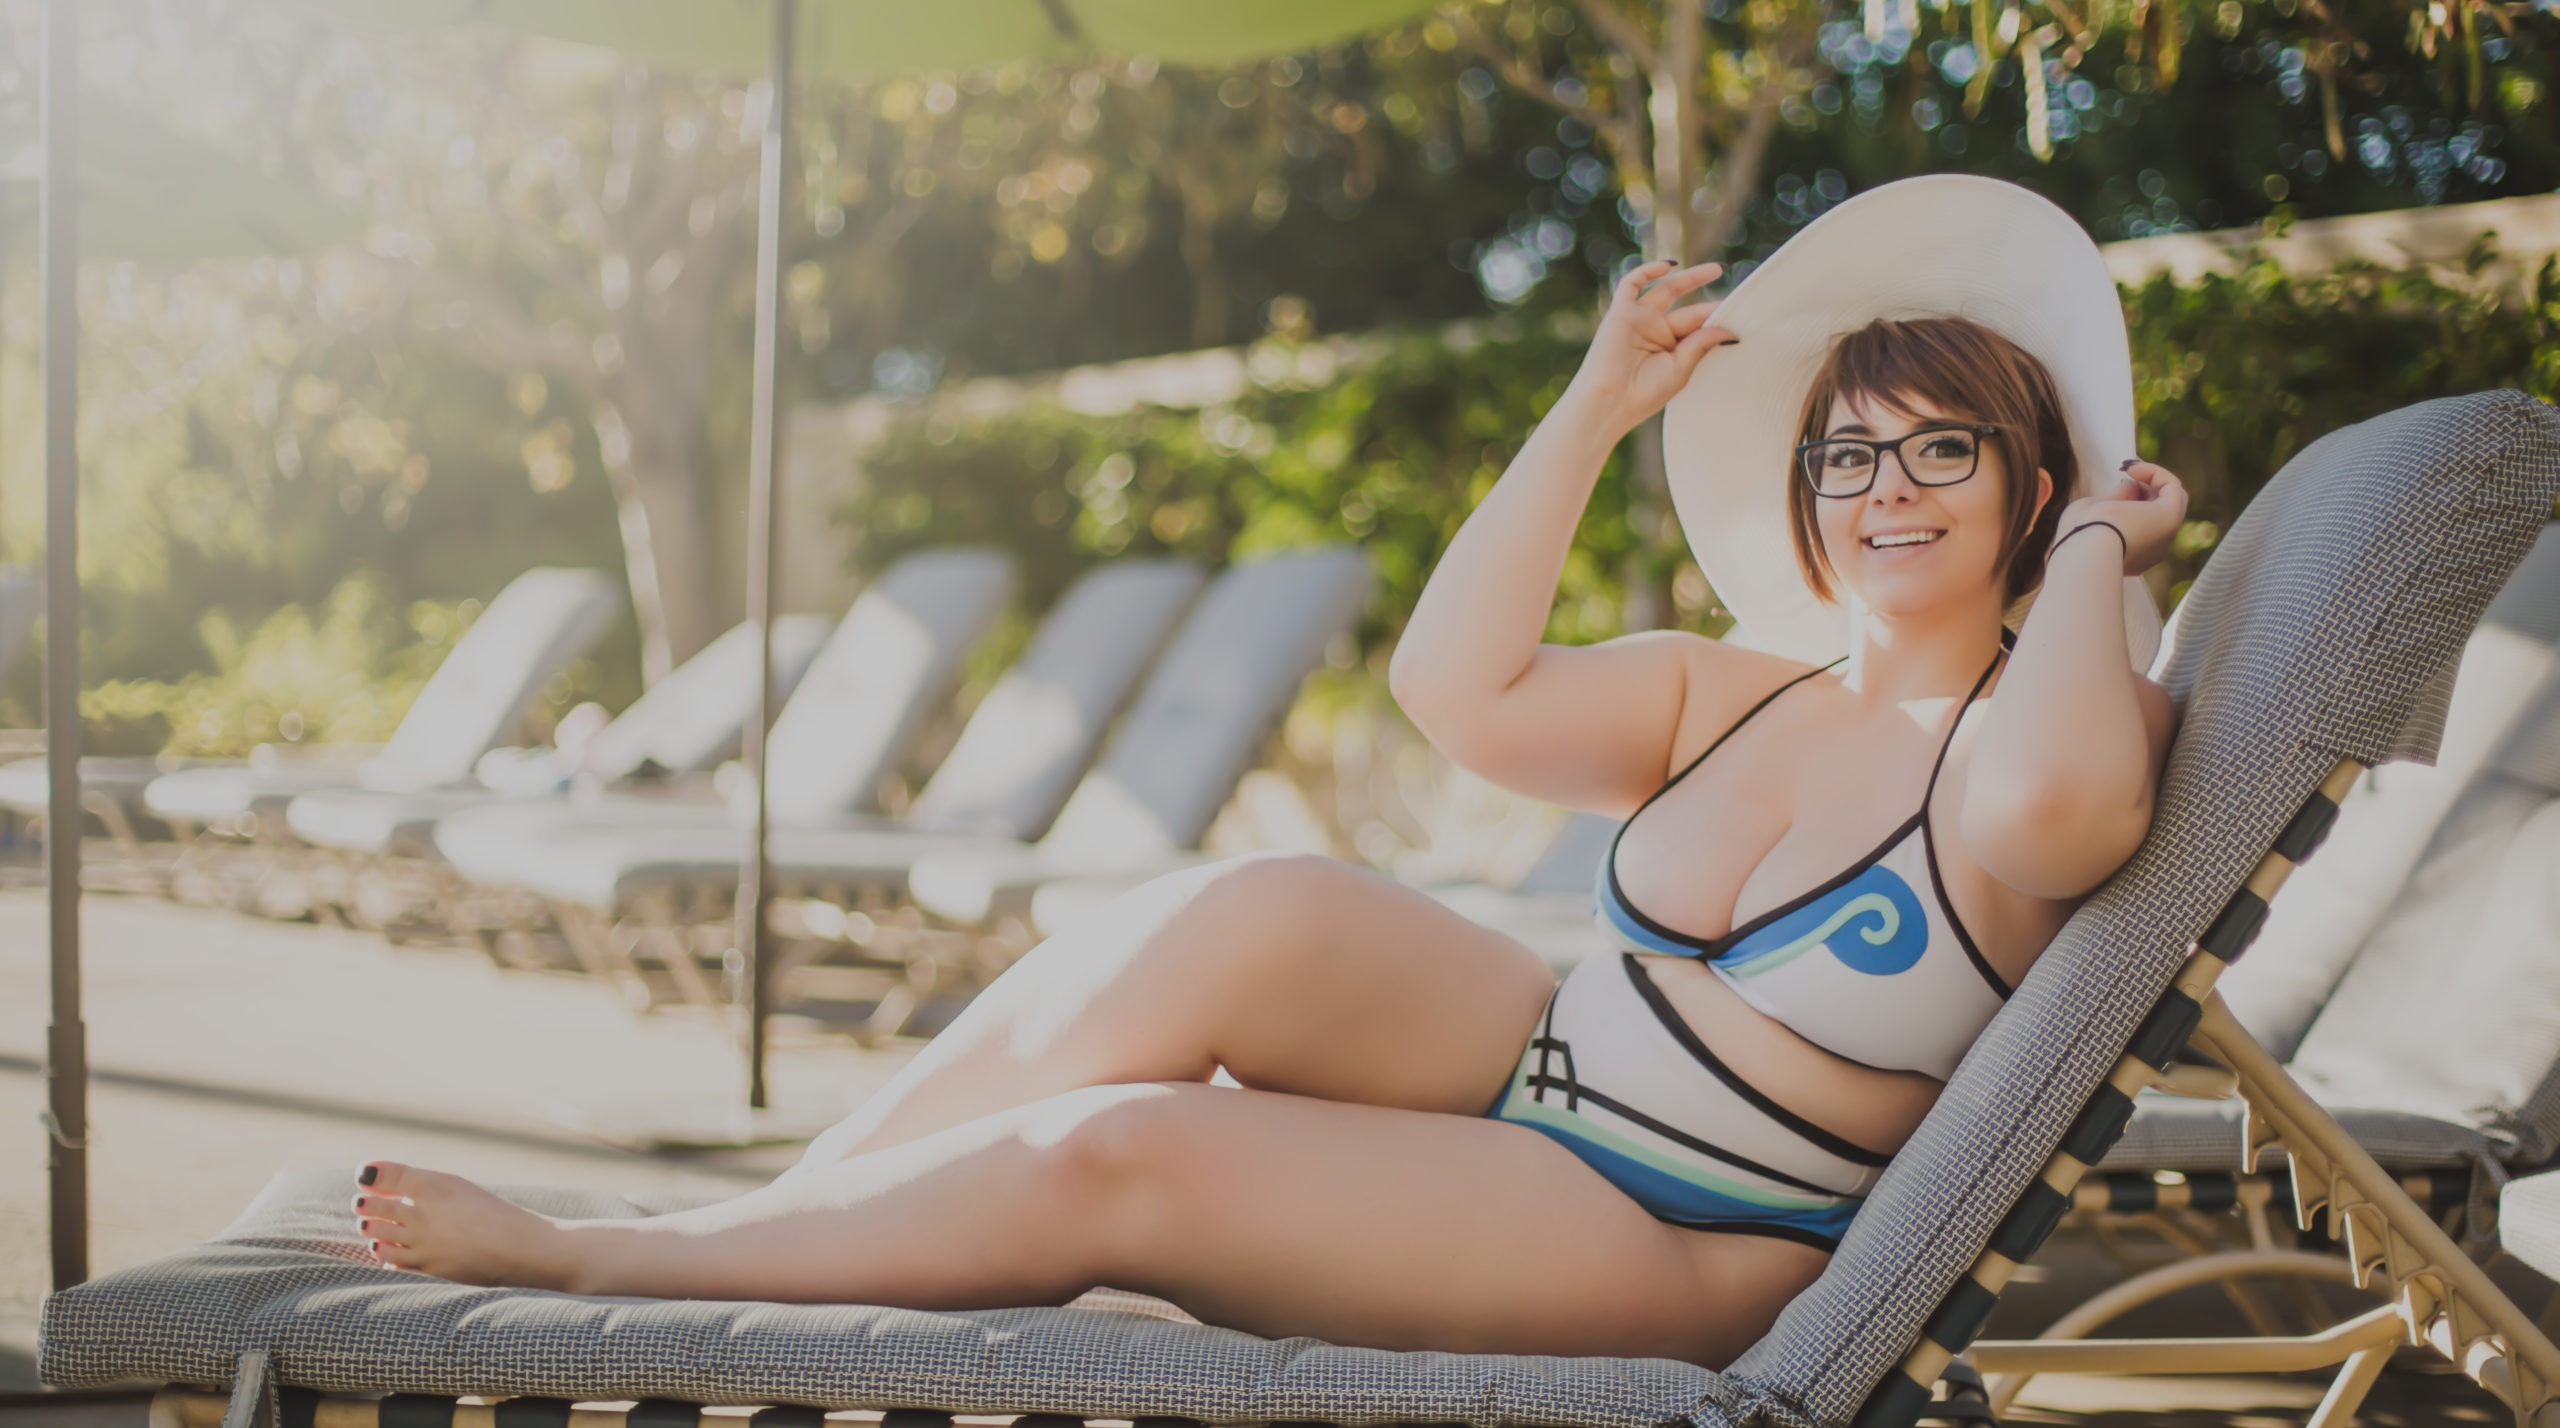 Momokun as swimsuit mei chilling by a pool.